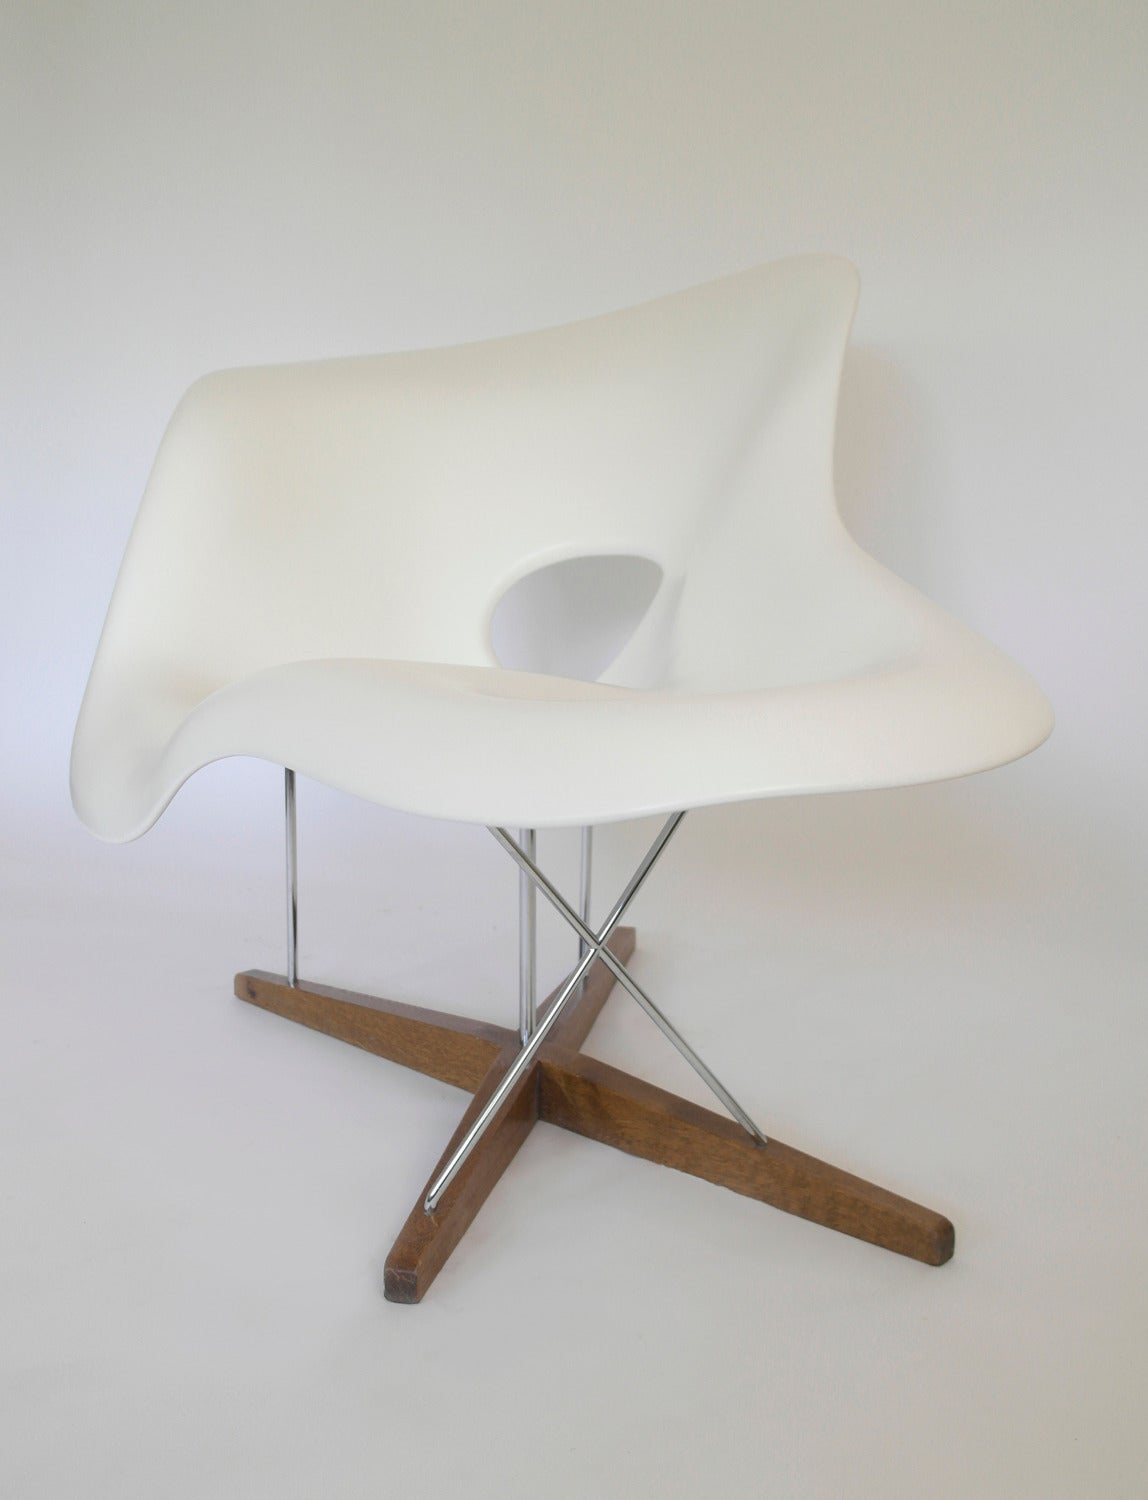 Chaise Design Eames Vitra Edition La Chaise By Charles Ray Eames